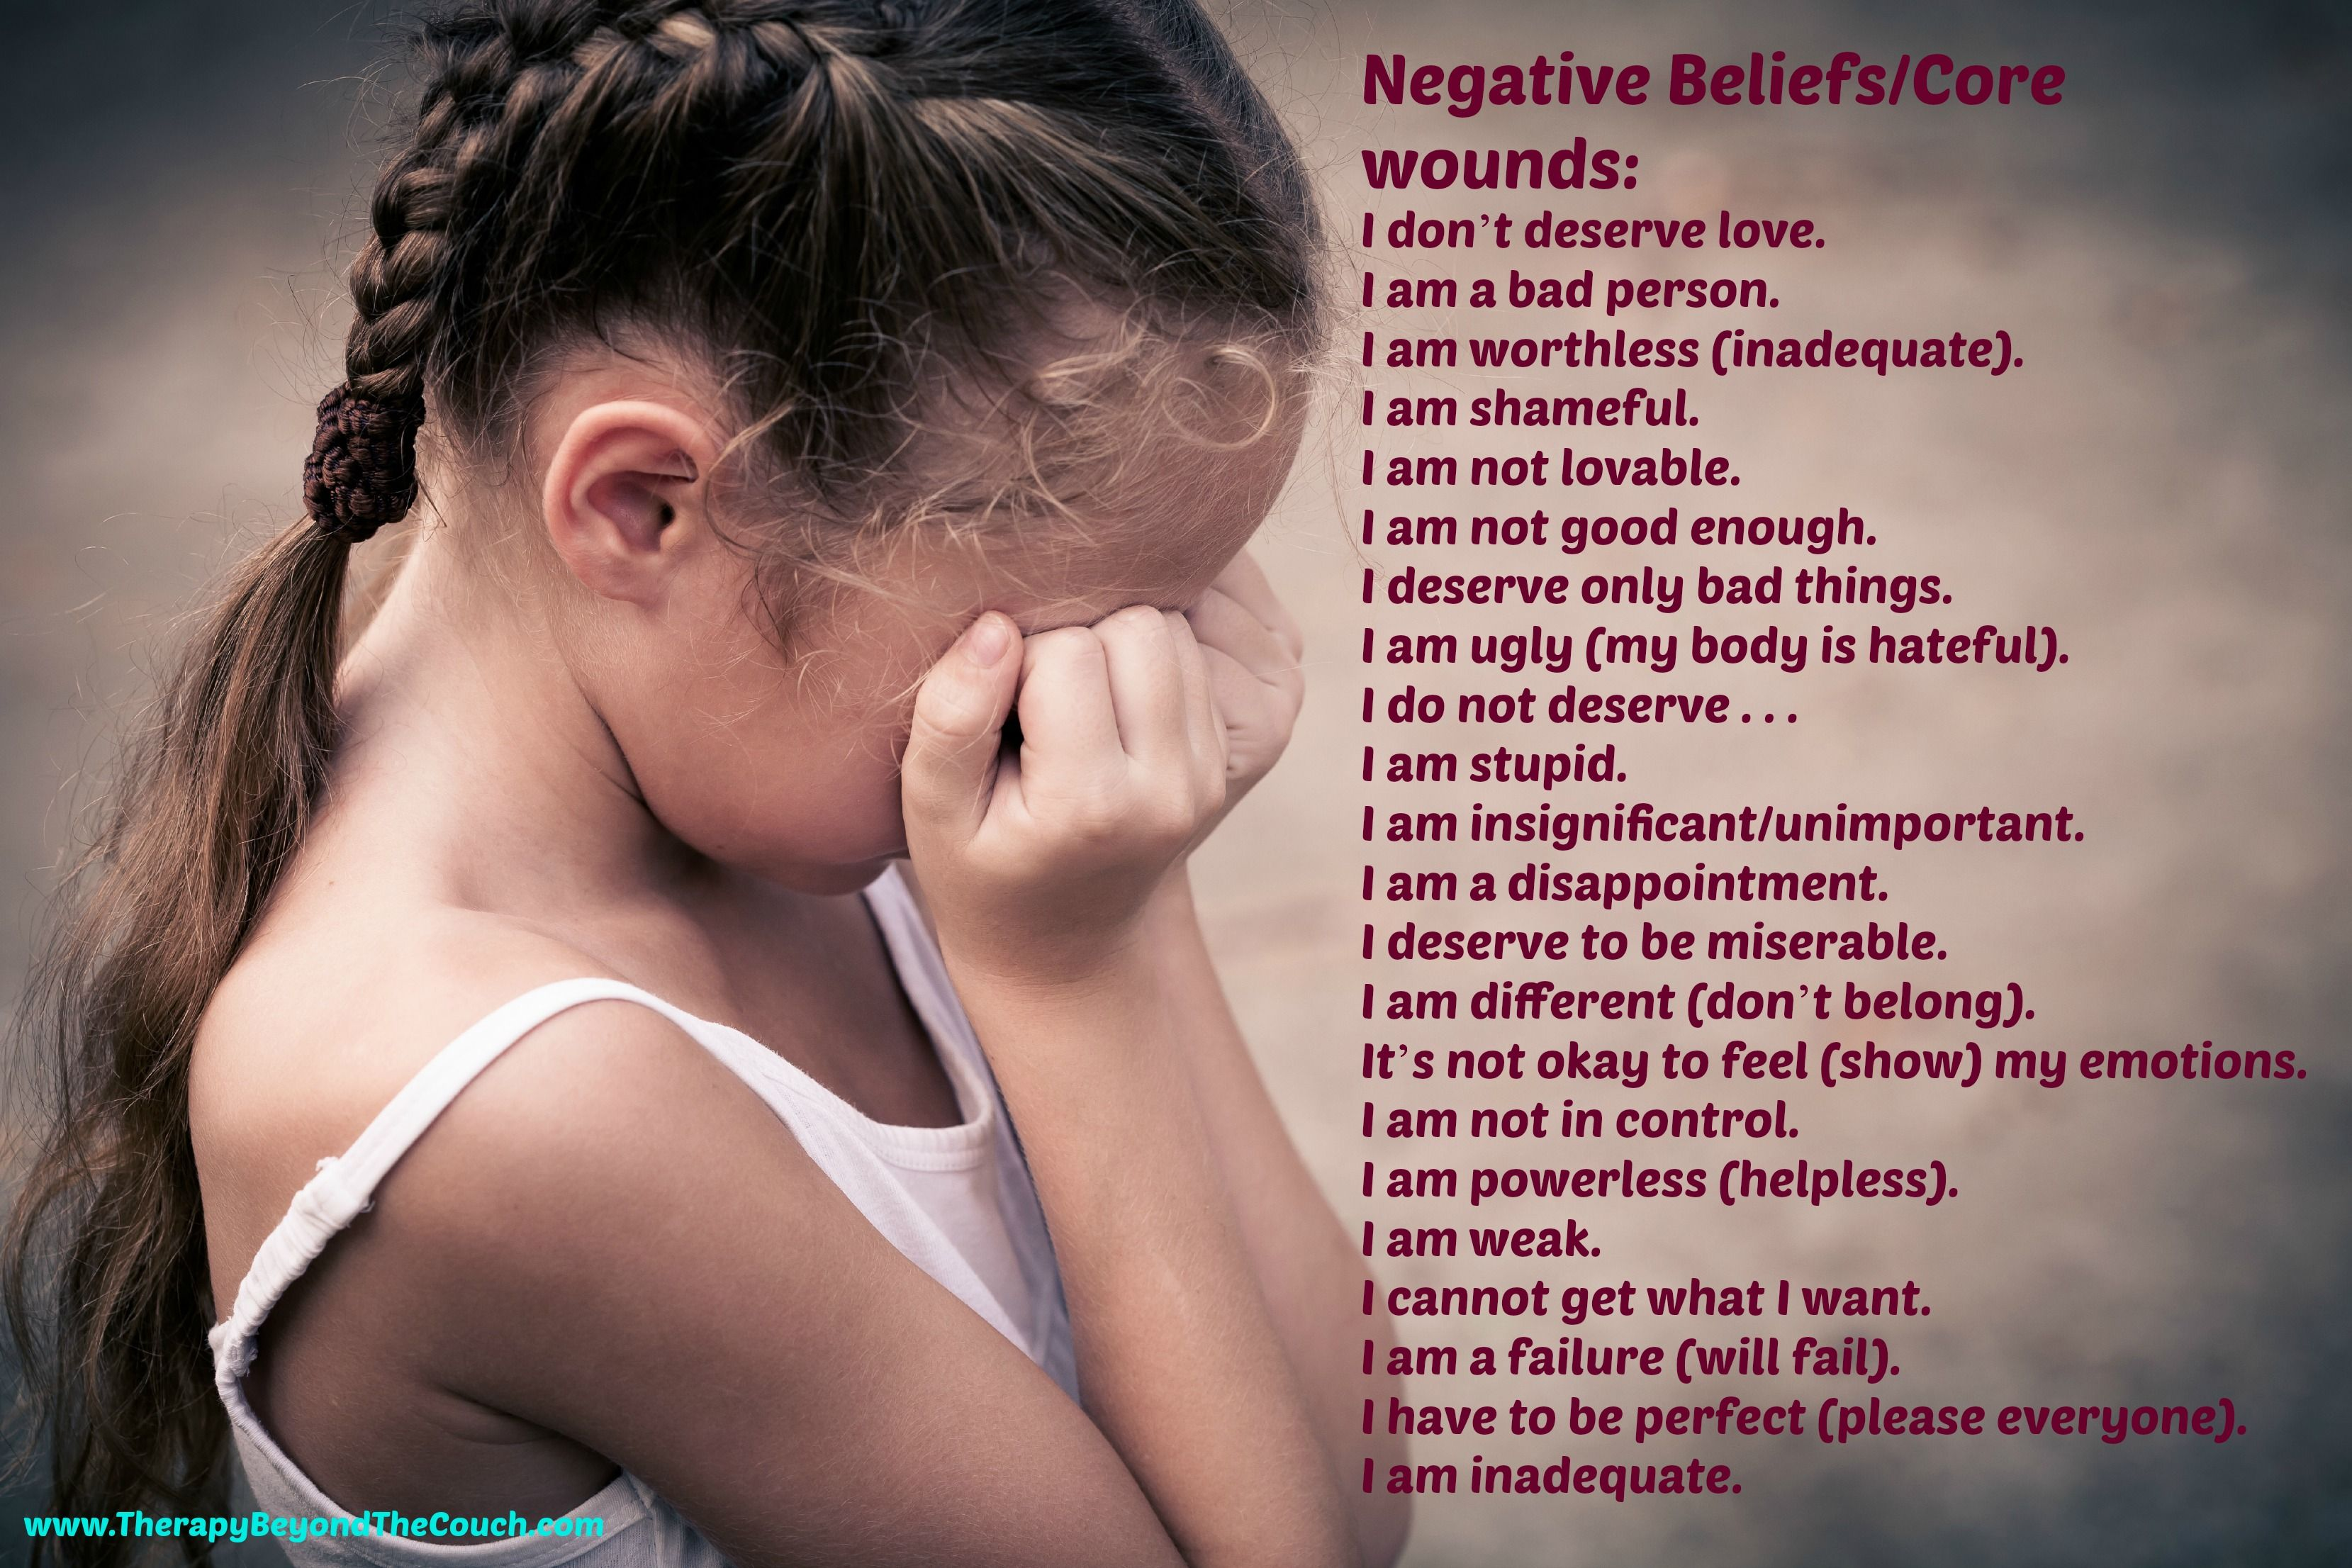 A List Of Our Negative Beliefs Core Wounds From